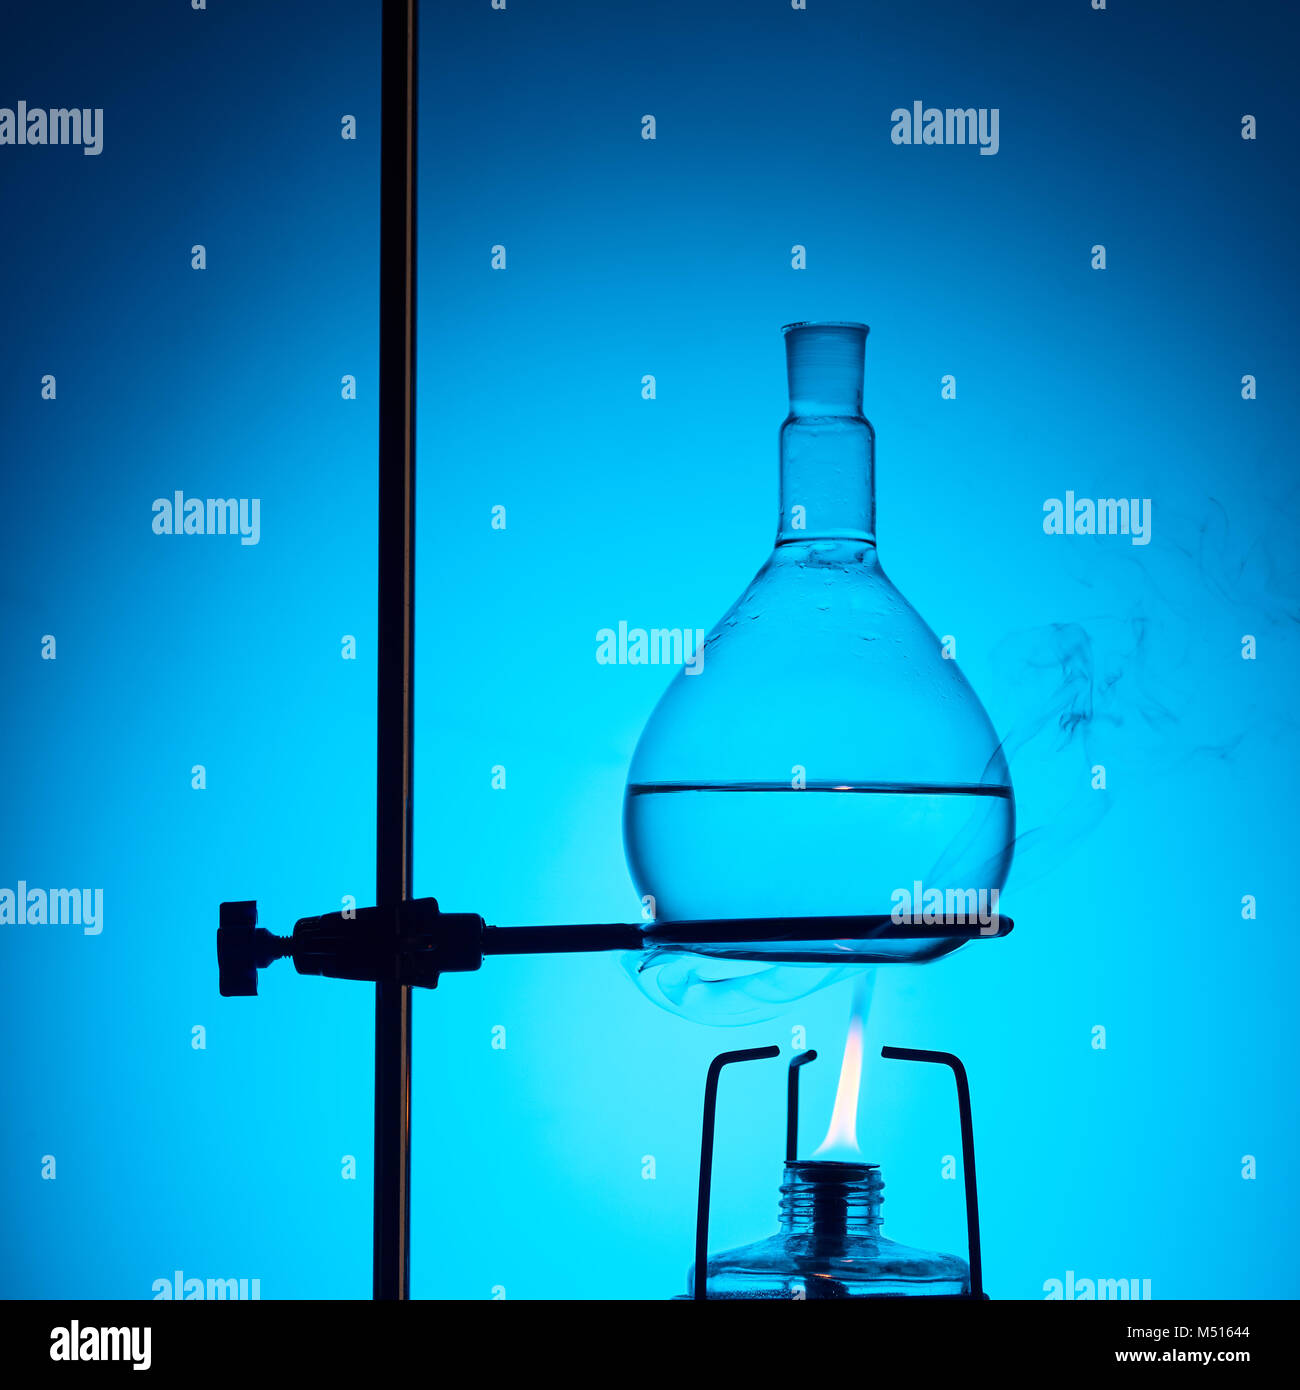 warming up liquid for chemical test isolated on blue - Stock Image